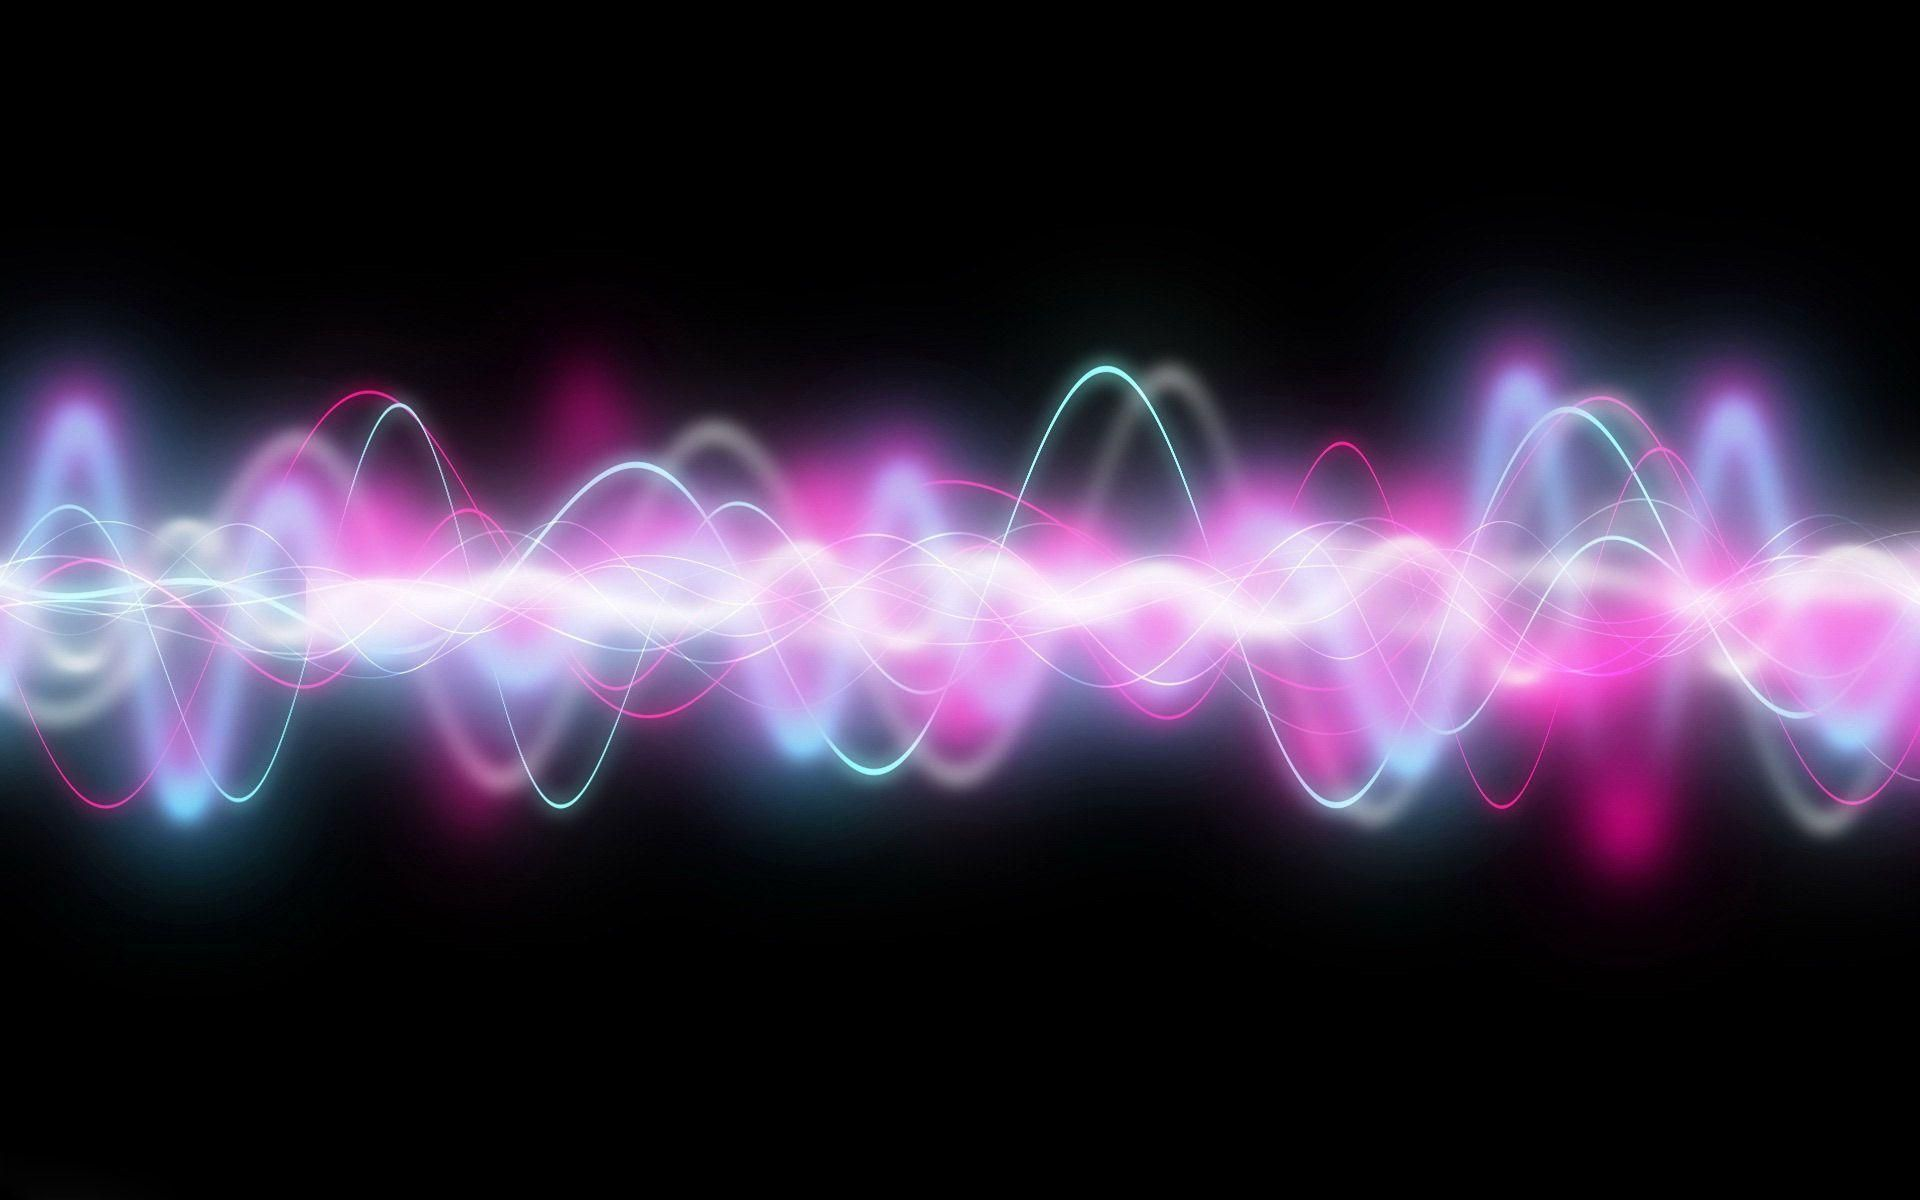 Sound Wave Wallpapers Wallpaper Cave Sound Waves Waves Wallpaper Transparent Wallpaper